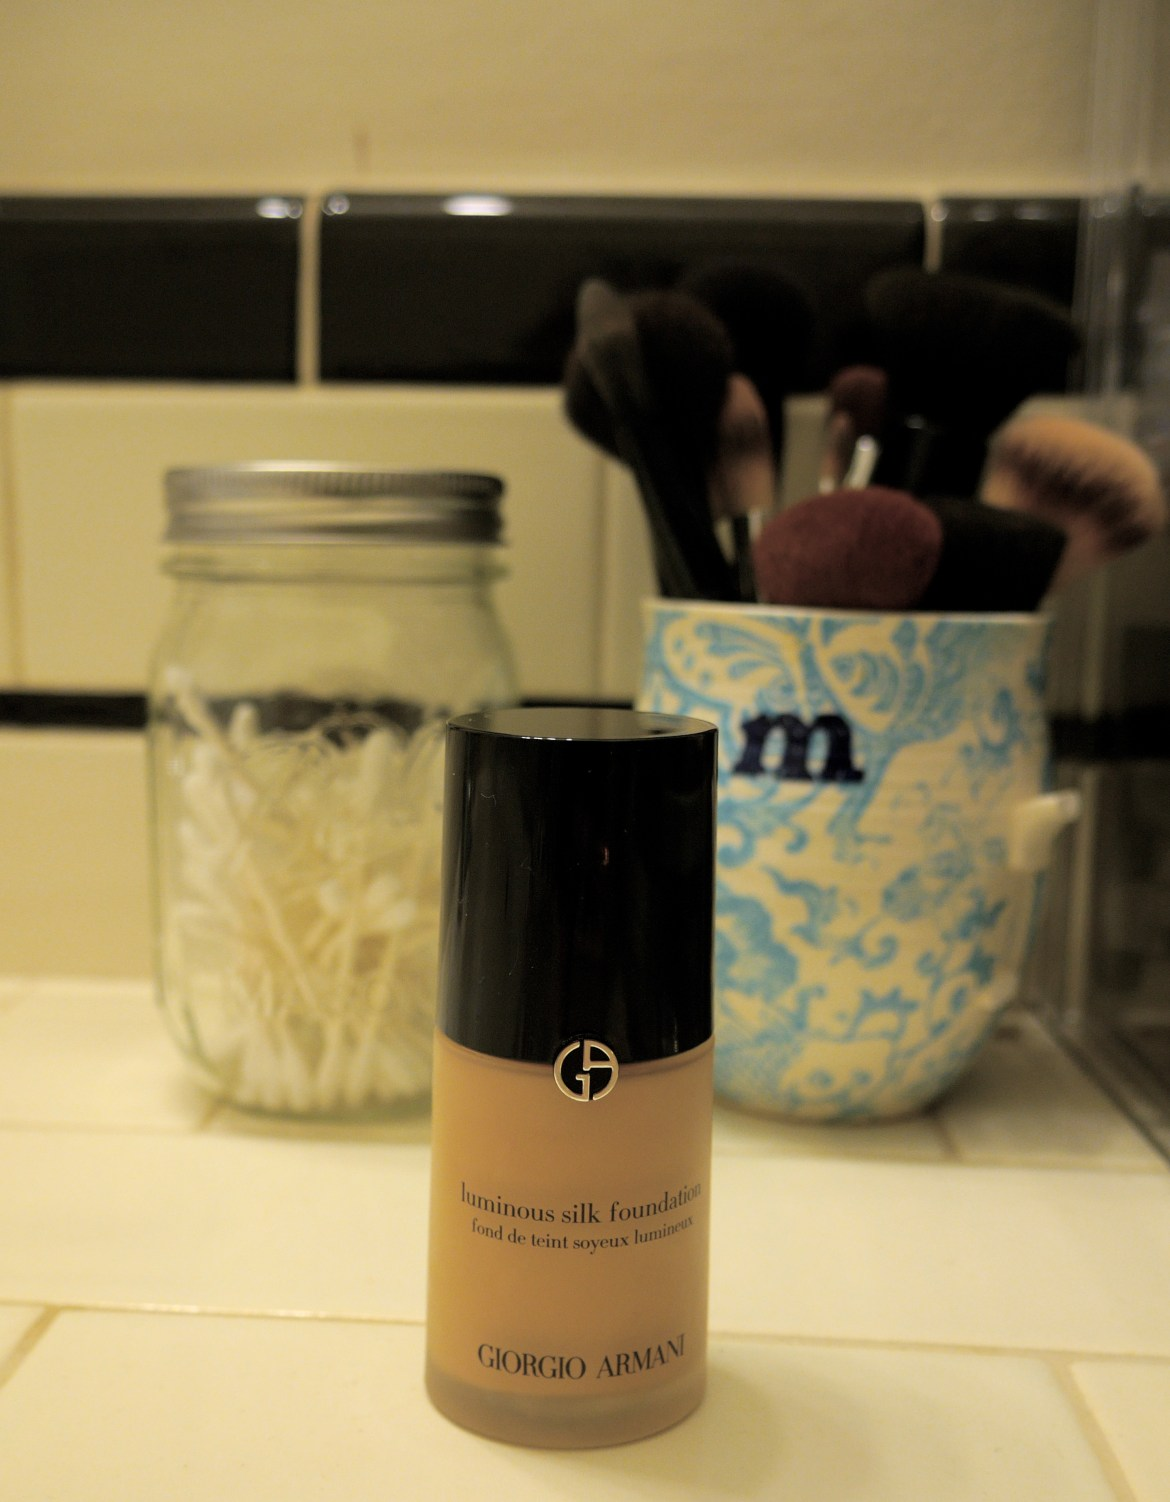 Giorgio-Armani-Luminous-Silk-Foundation-4.25.jpeg